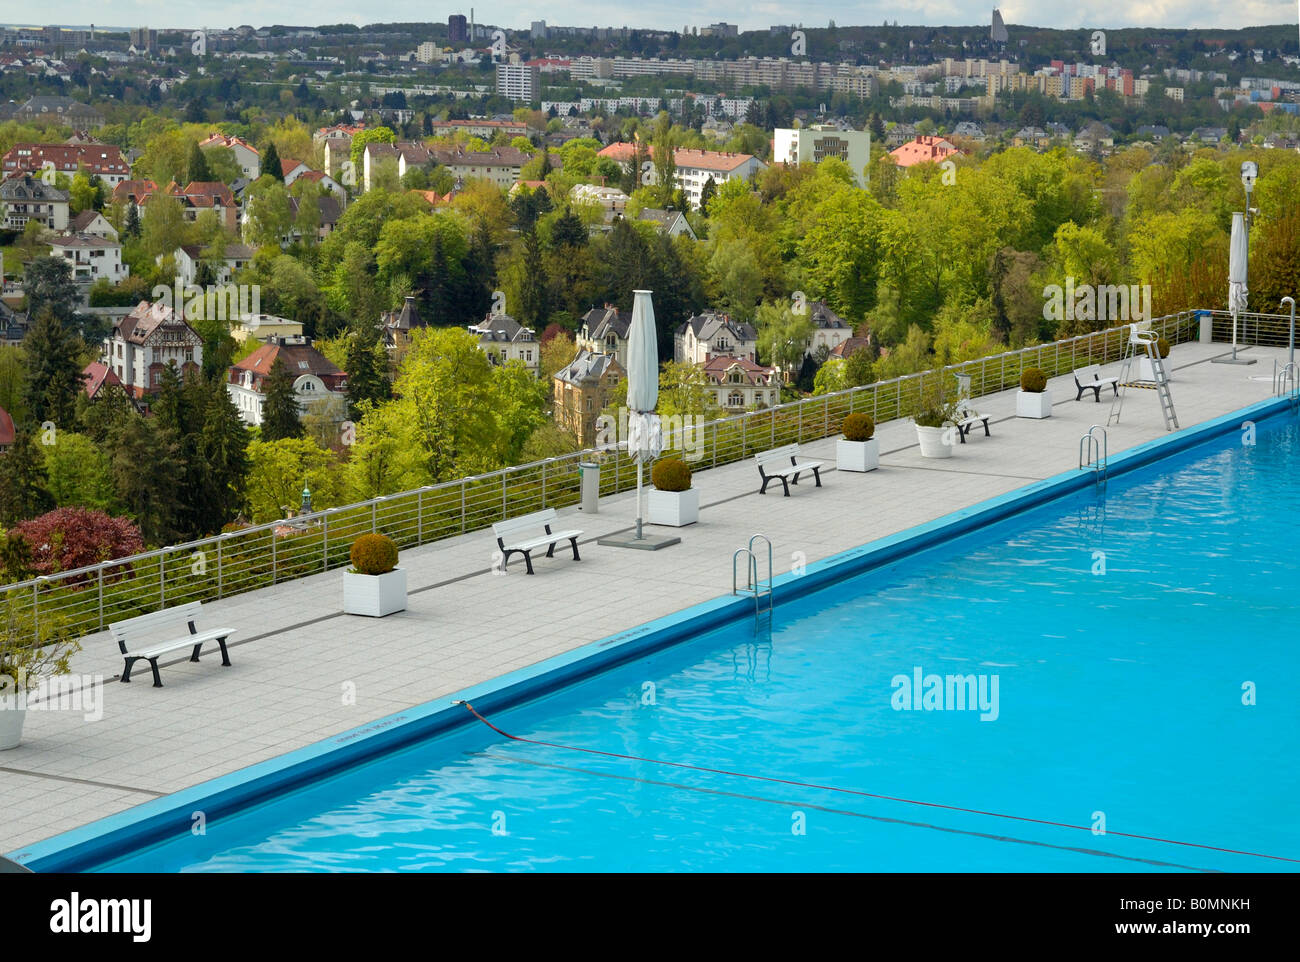 opel bad swimming pool above the villa district of wiesbaden stock photo royalty free image. Black Bedroom Furniture Sets. Home Design Ideas